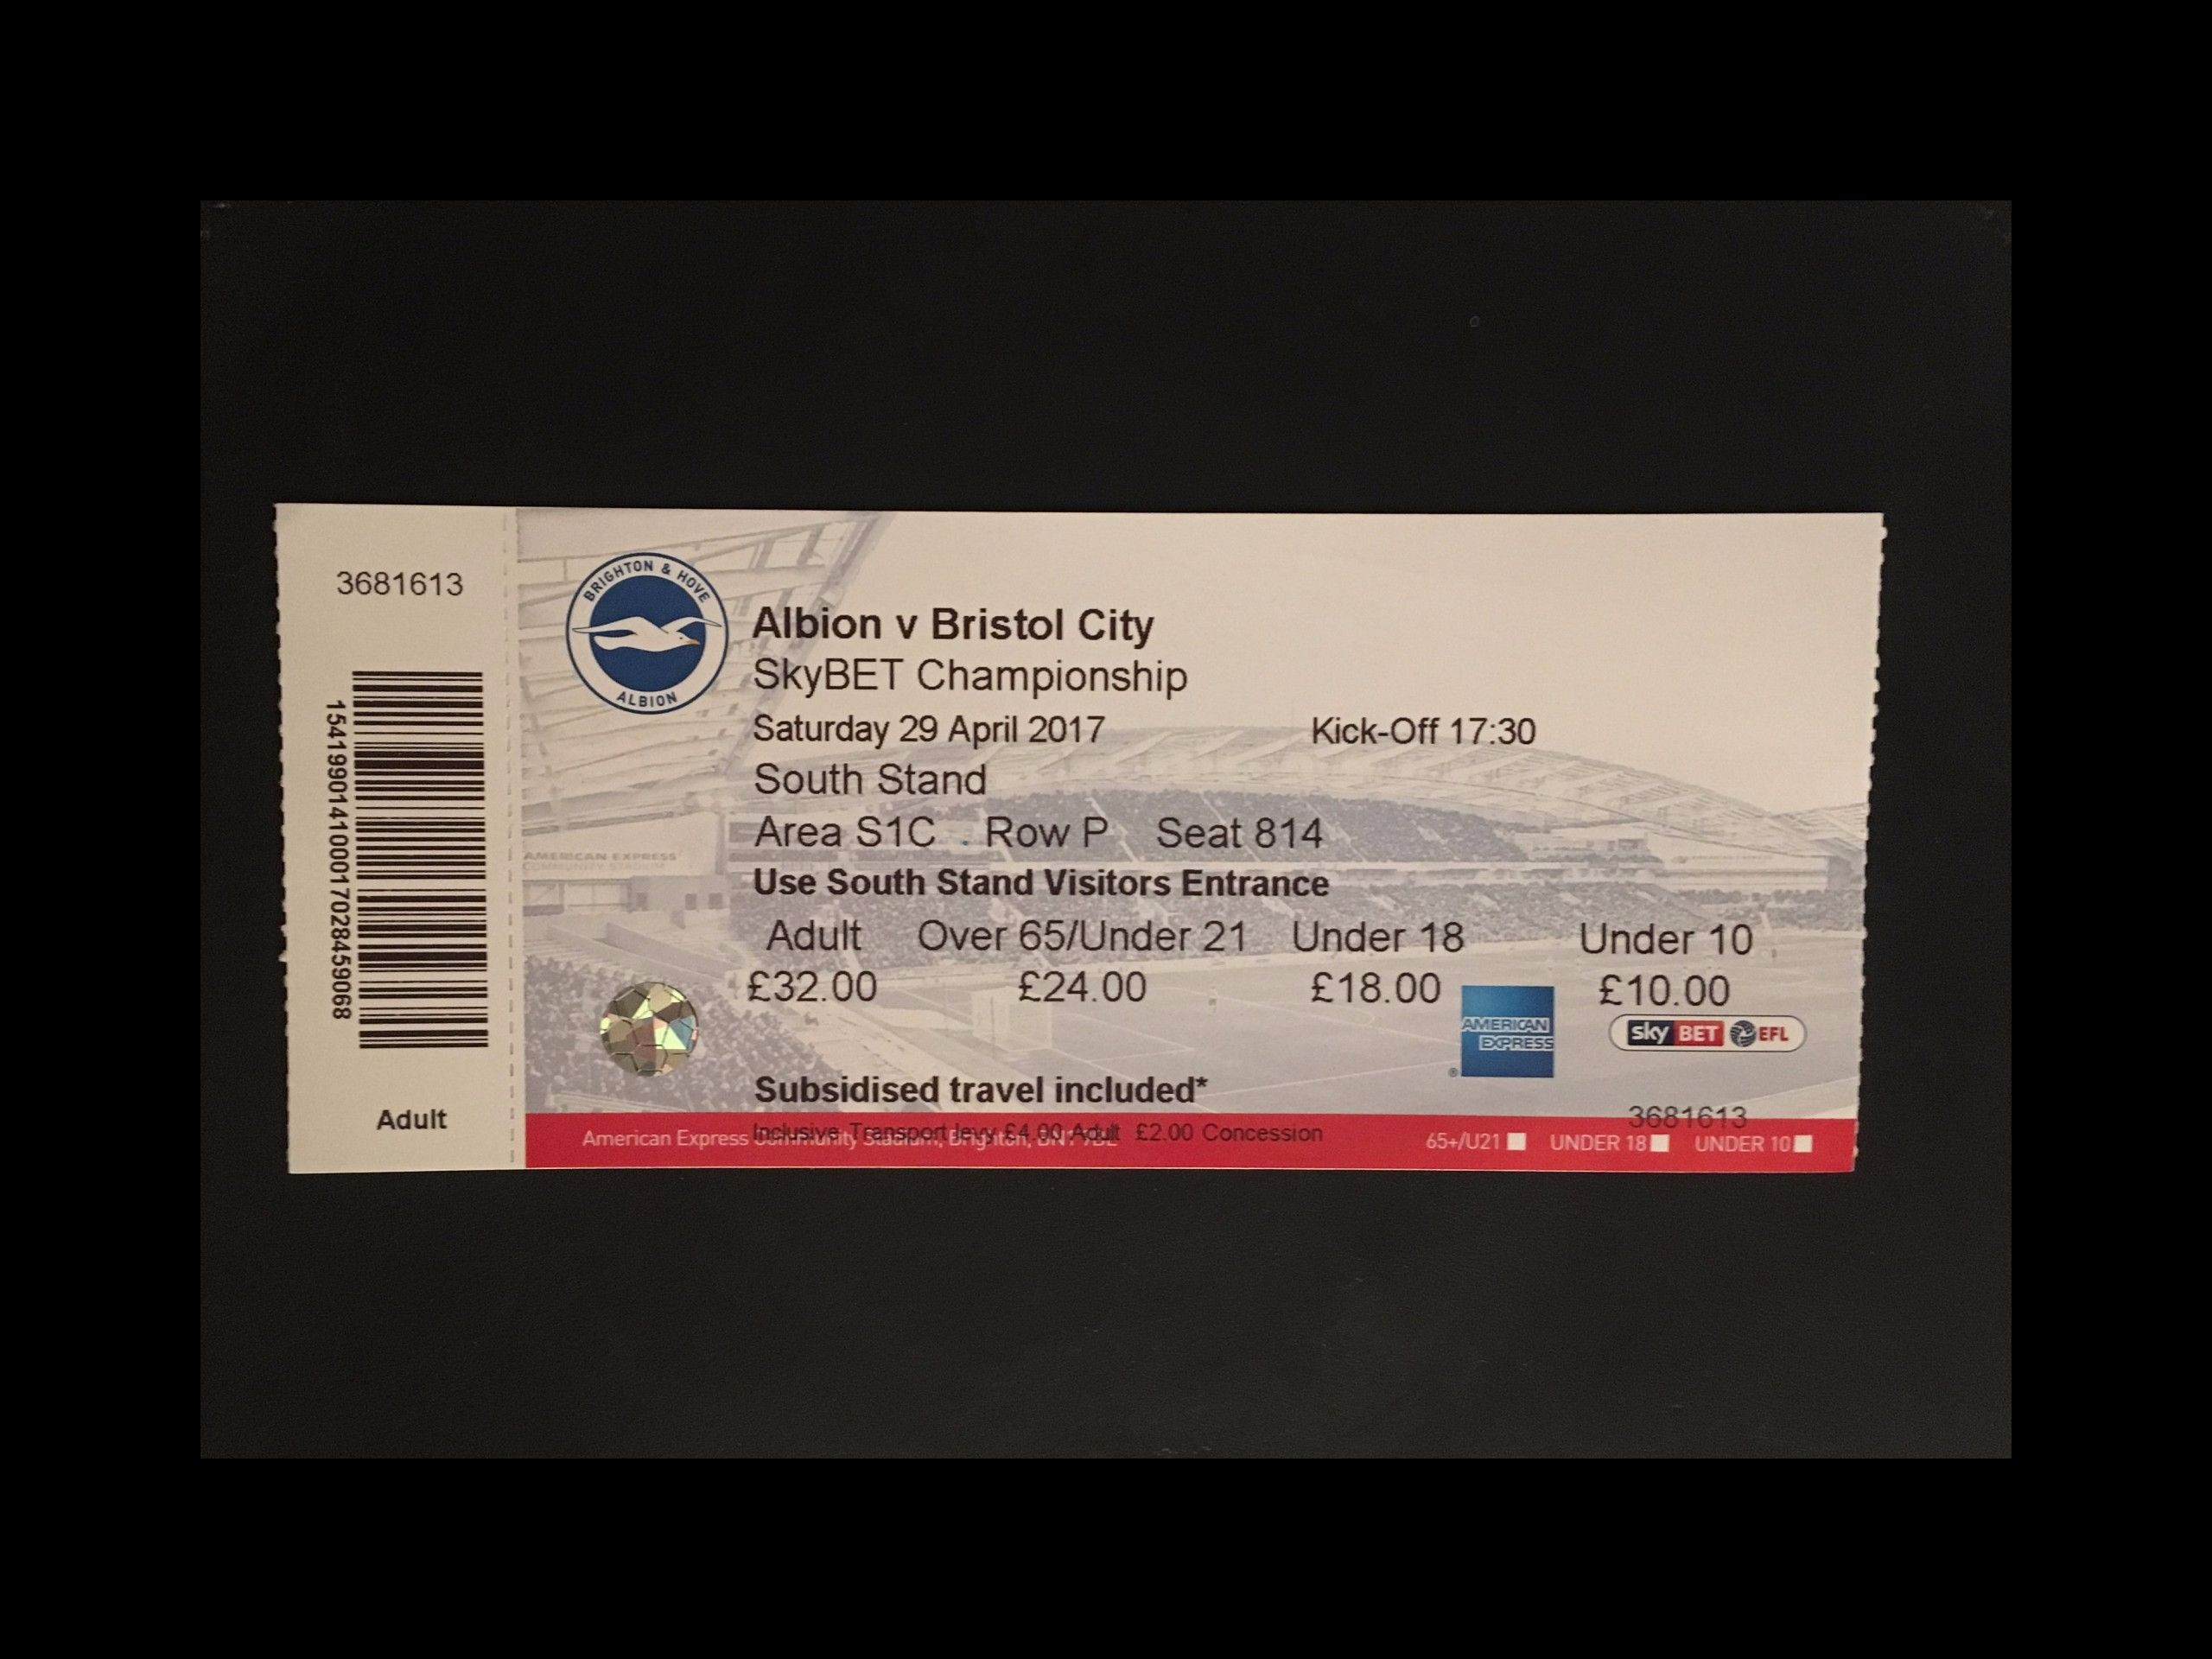 Brighton & Hove Albion v Bristol City 29-04-17 Ticket